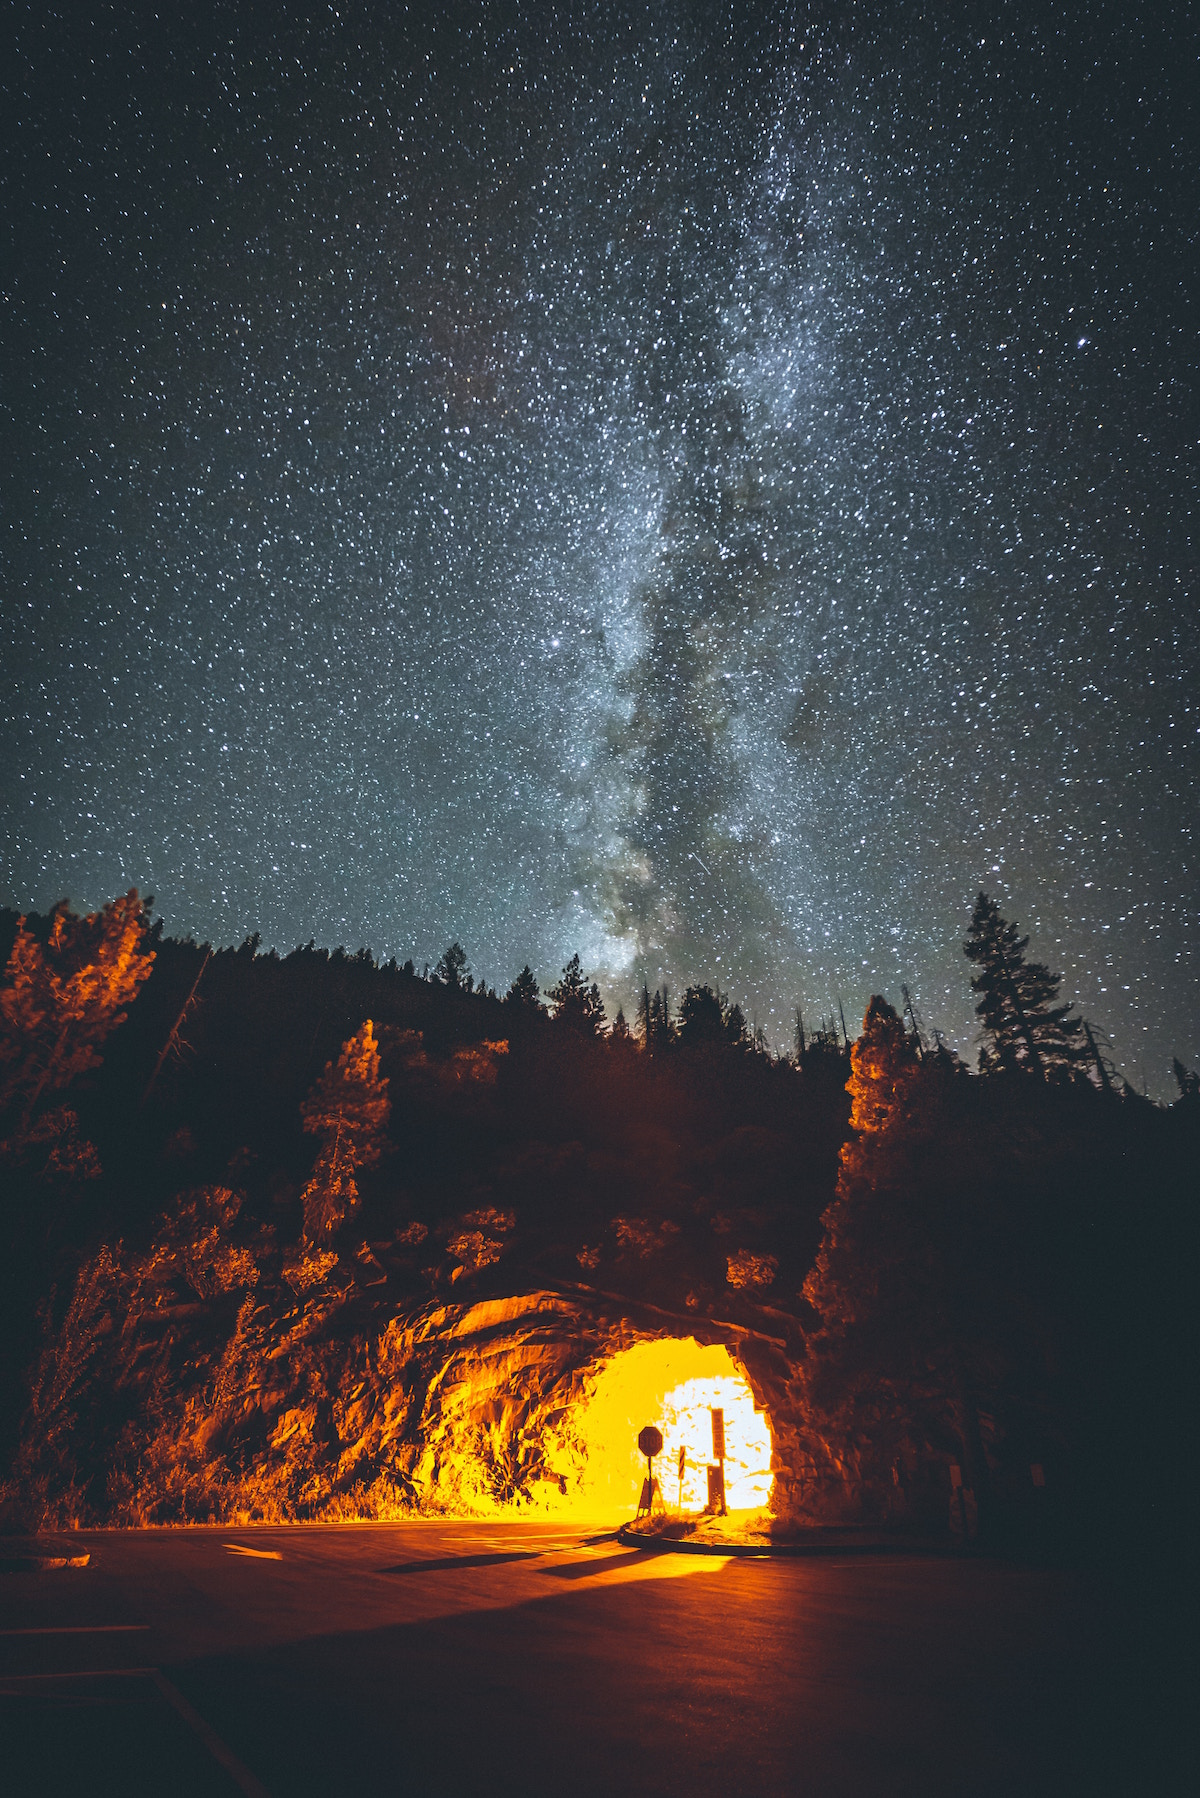 Night sky over a mountain with a lighted tunnel running through it